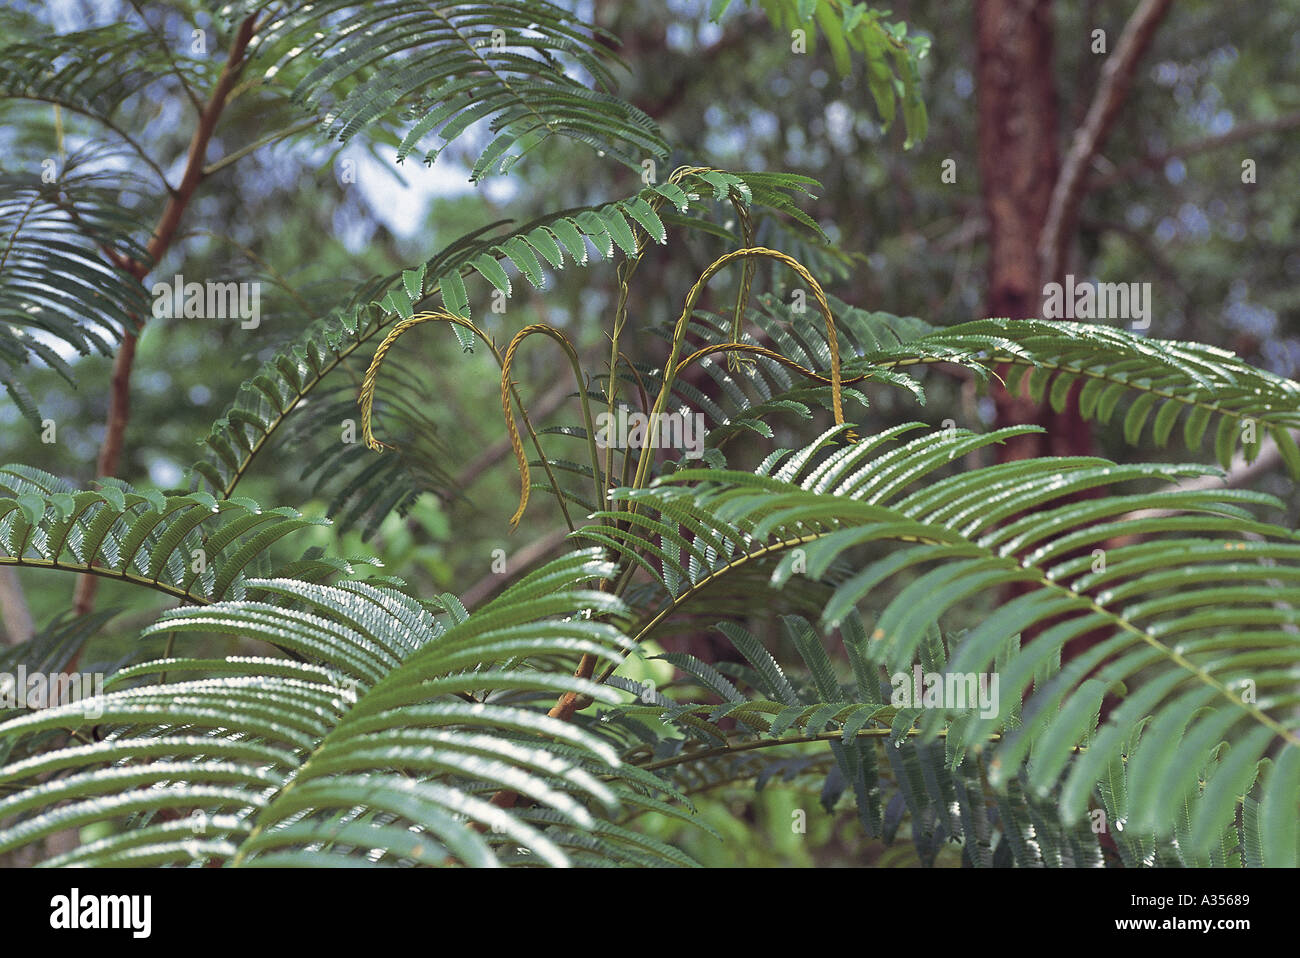 amazon rainforest plants. stock photo trombetas brazil fern plants in the amazon rainforest para state